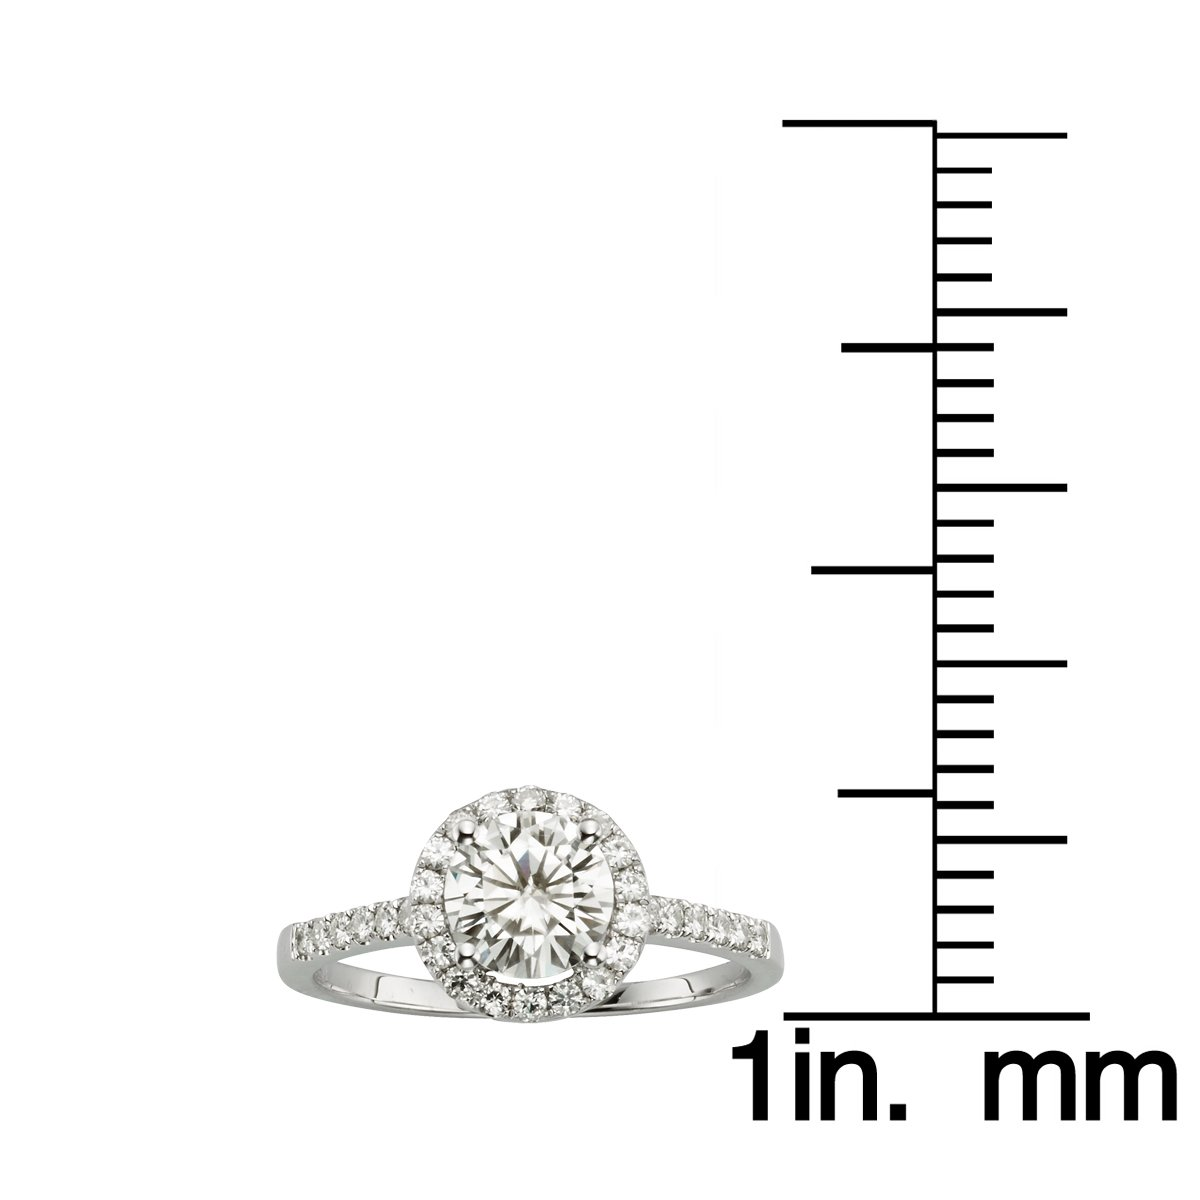 Forever Brilliant 6.5mm Moissanite Engagement Ring Size 5, 1.30cttw DEW By Charles & Colvard by Charles & Colvard (Image #4)